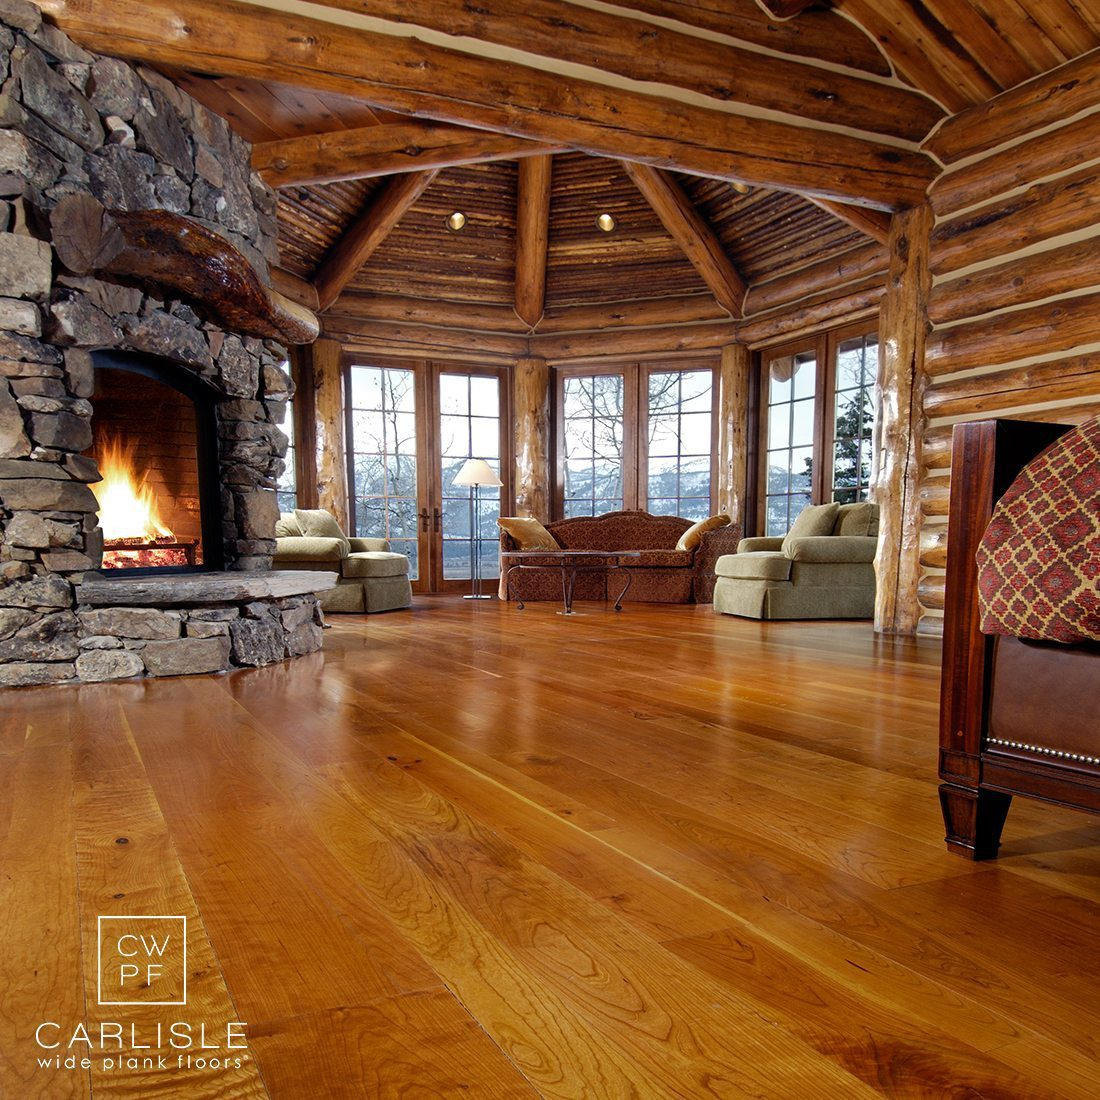 Cherry Wood Floors & Engineered Hardwood Flooring from Carlisle Wide Plank Floors